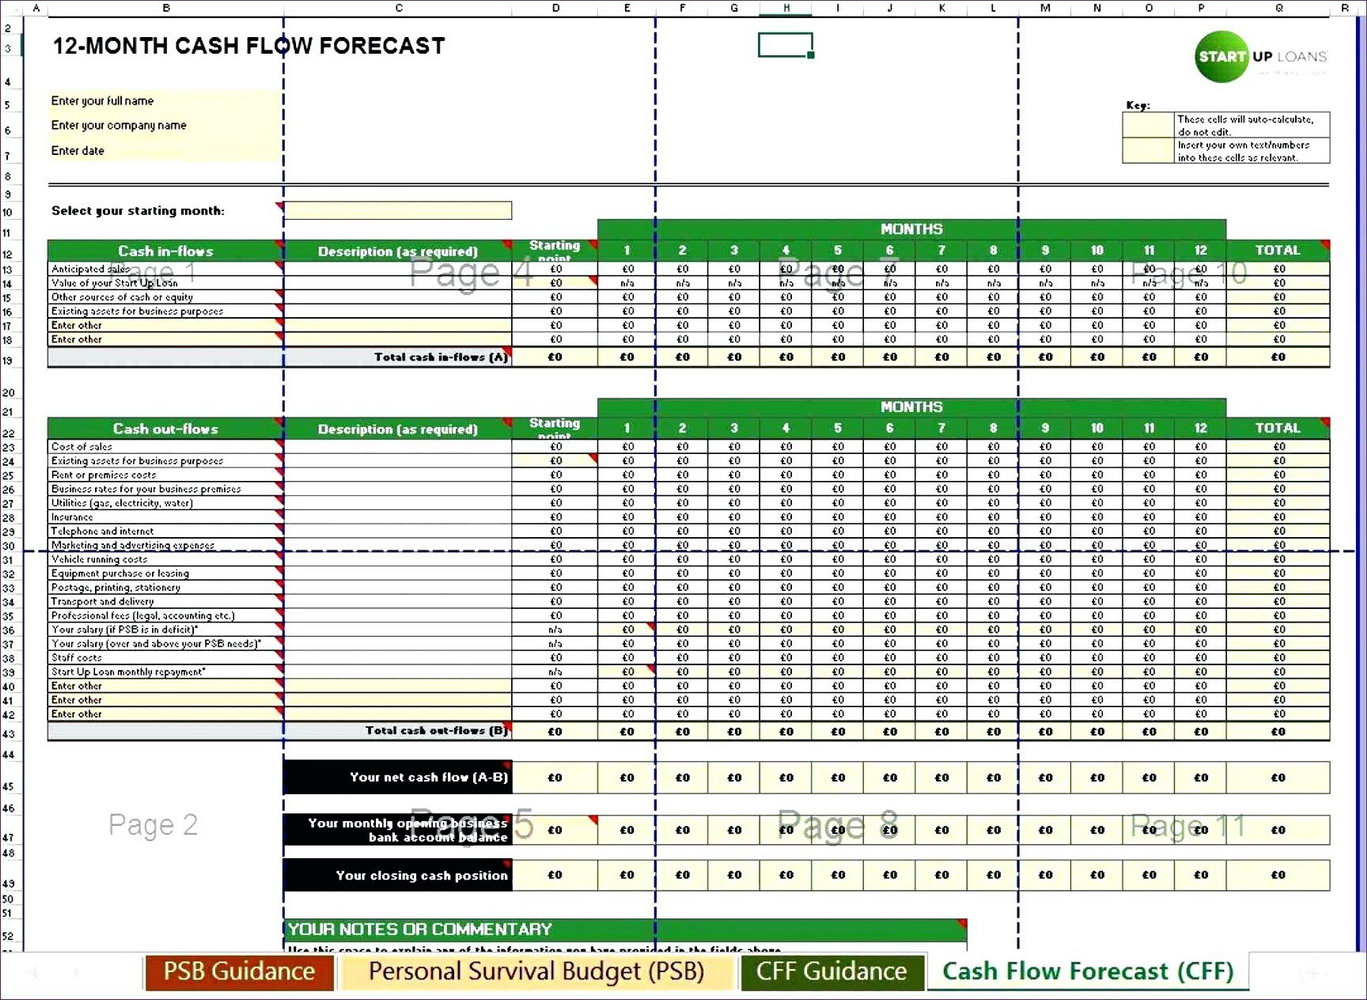 Daily Cash Flow Forecast Template Excel